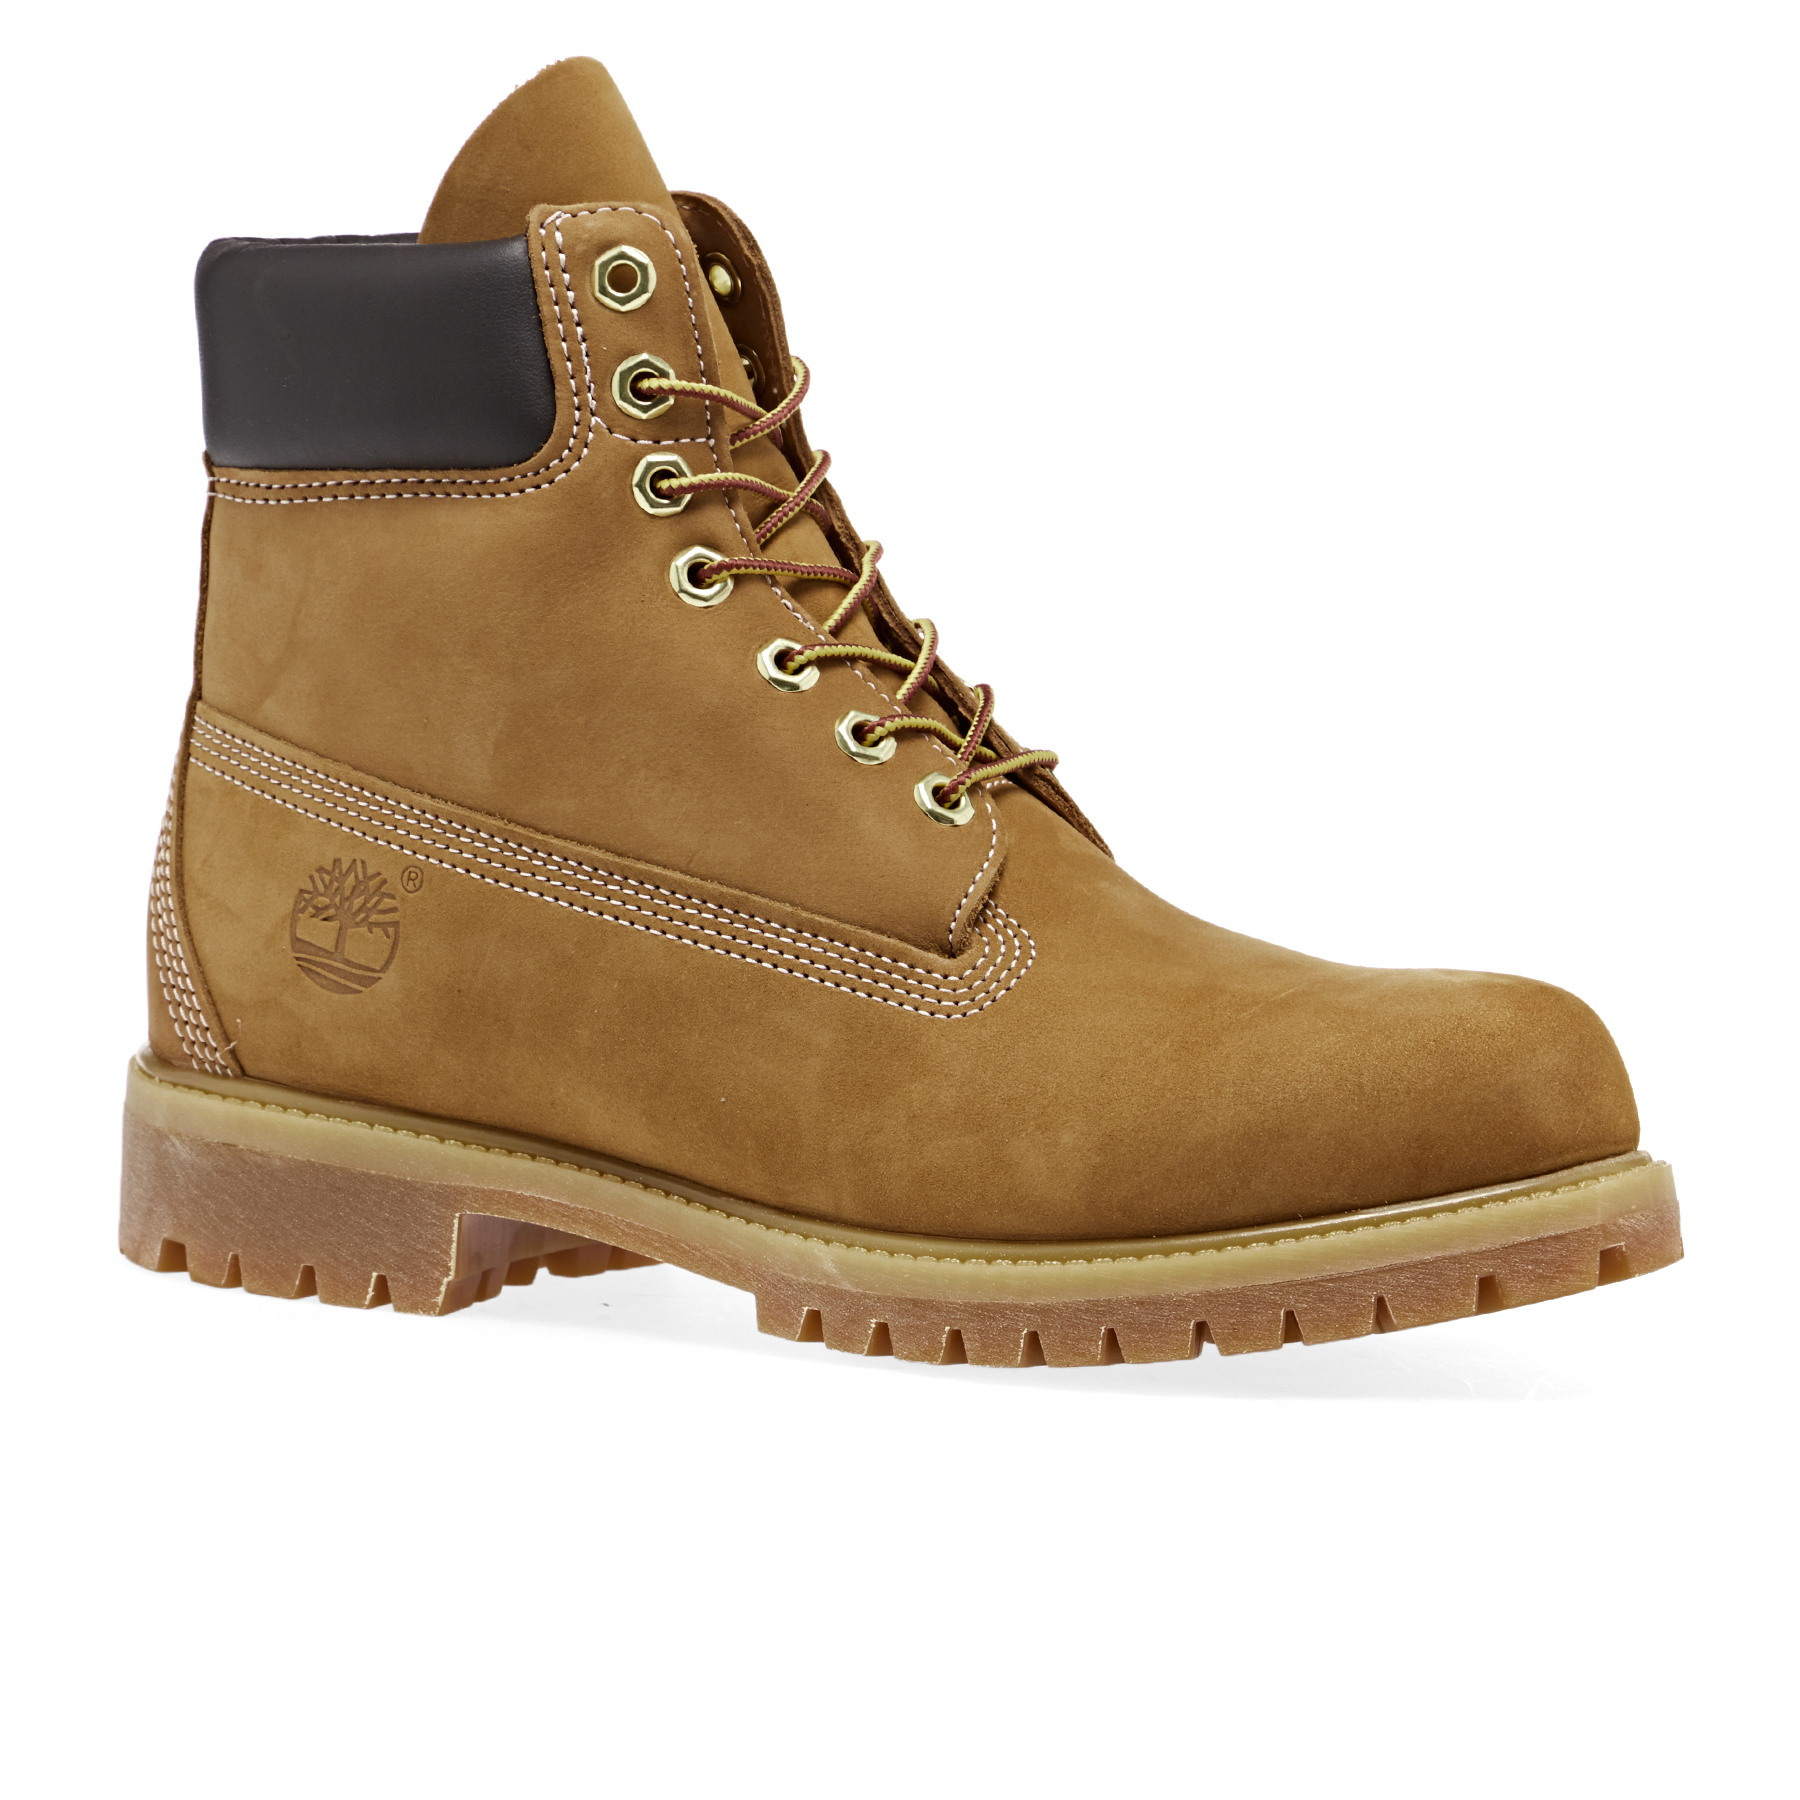 Timberland AF 6 inch Premium Waterproof Boots available from